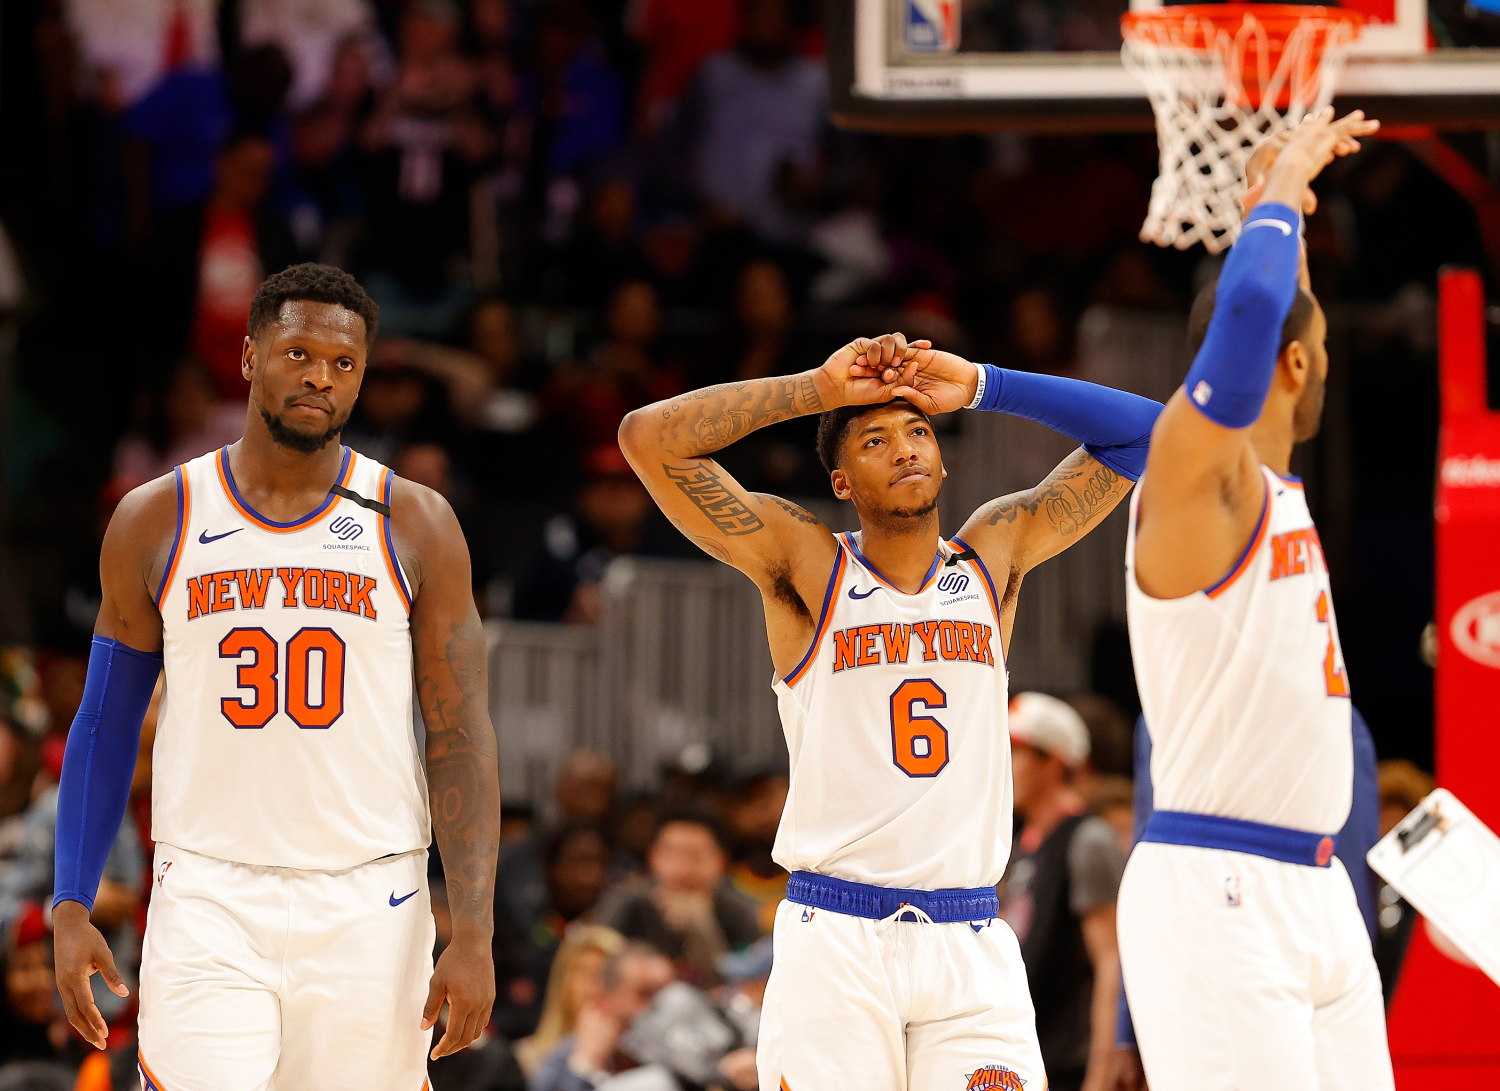 The New York Knicks Still Can't Decide About Trading for a New $21 Million Man